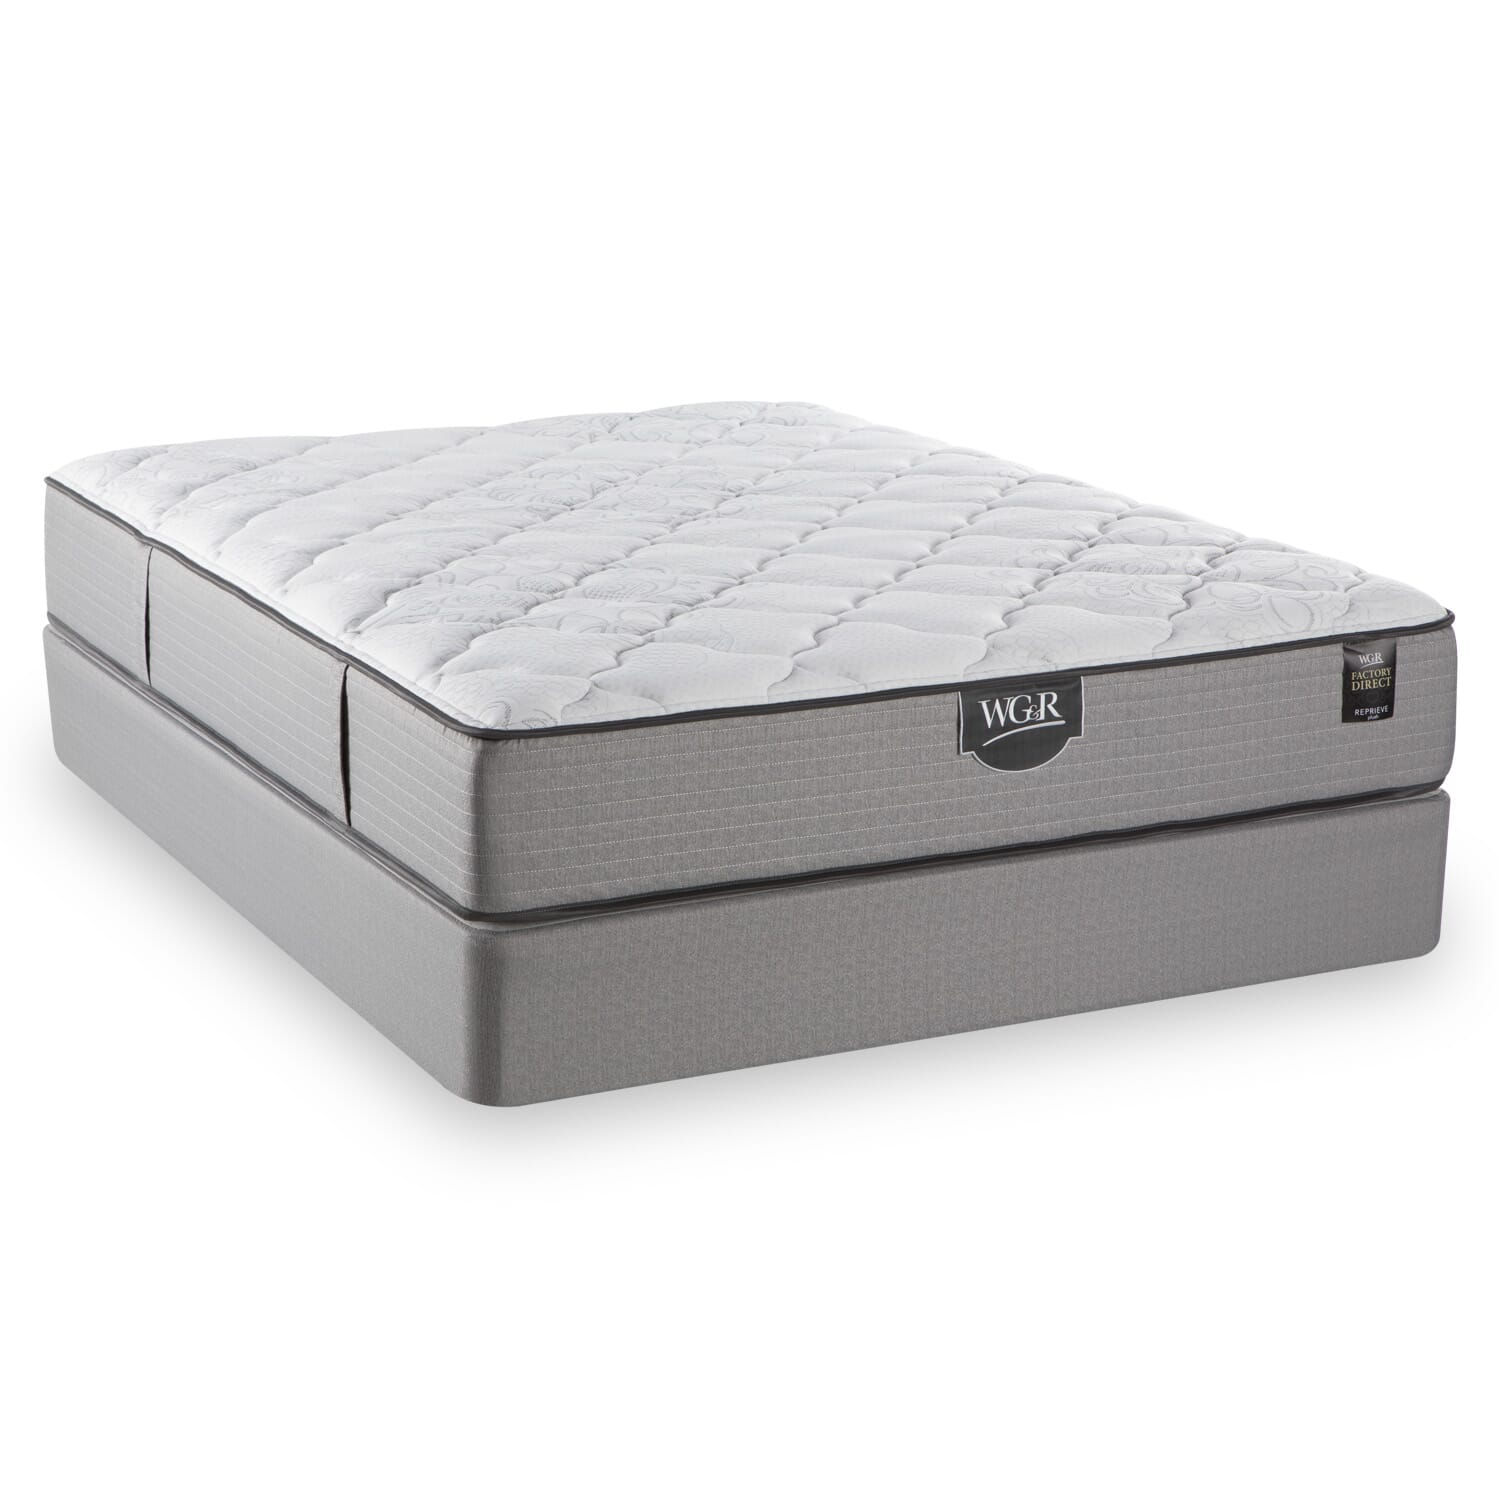 Reprieve Plush King Mattress Mattresses Wg Amp R Furniture